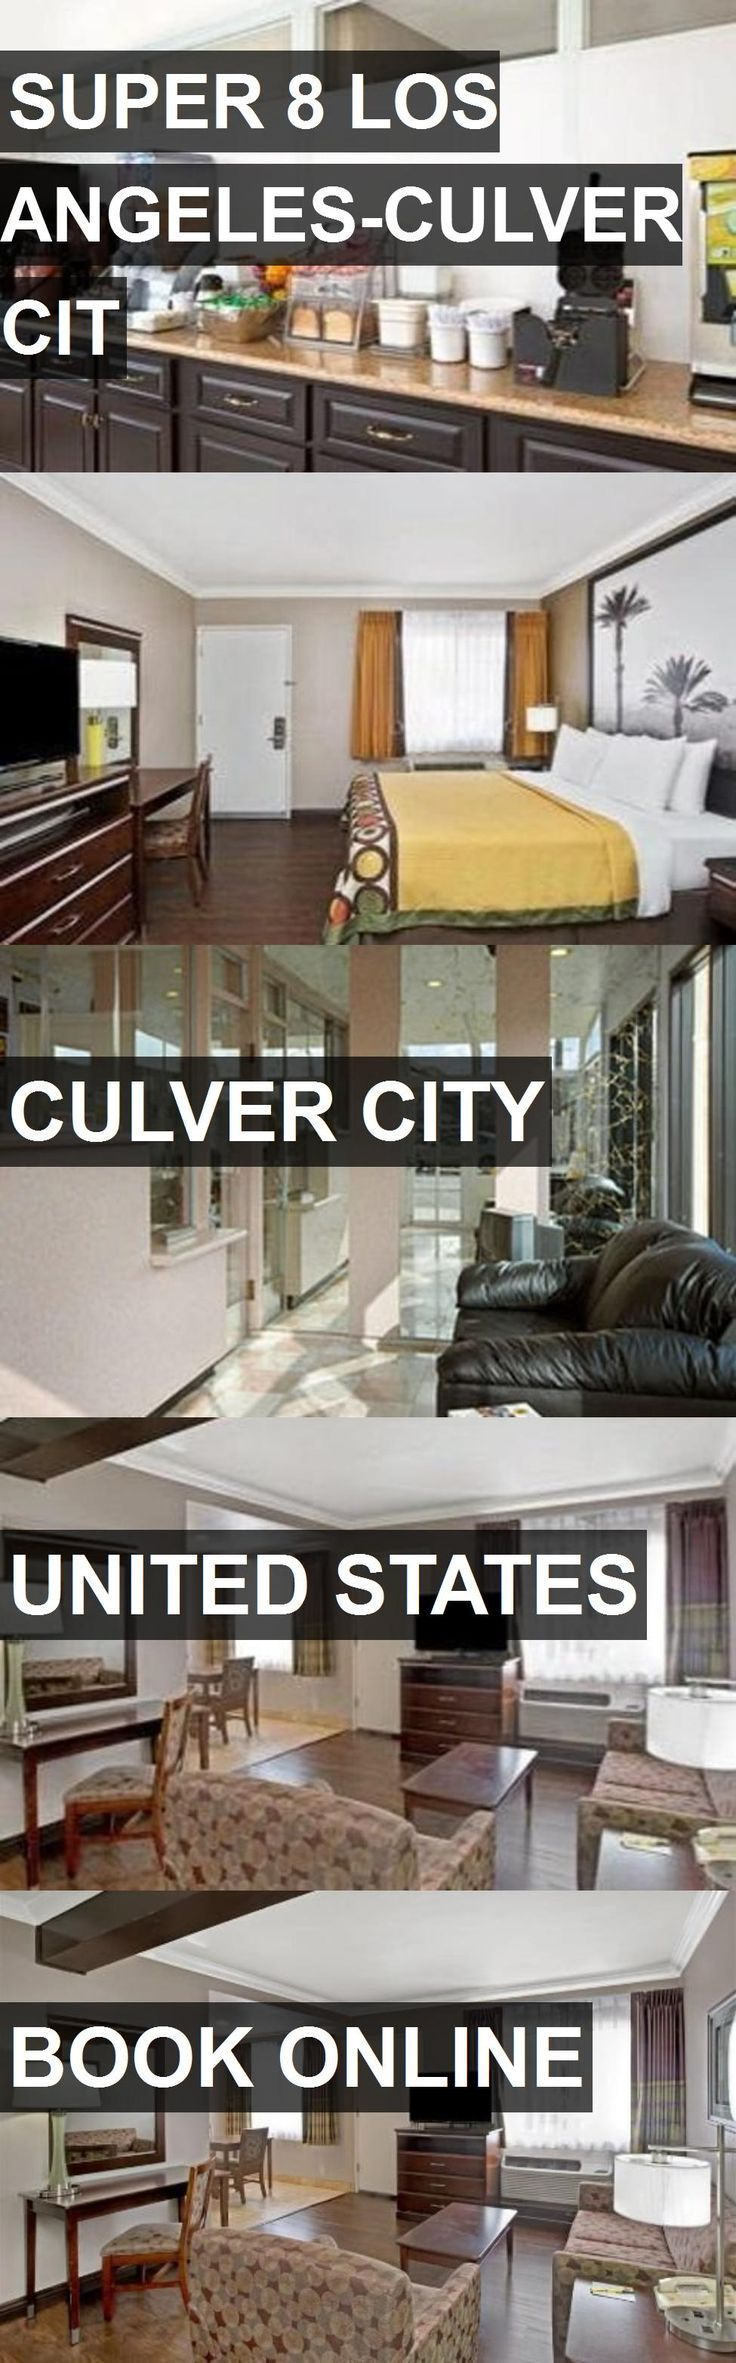 Hotel SUPER 8 LOS ANGELES-CULVER CIT in Culver City, United States. For more information, photos, reviews and best prices please follow the link. #UnitedStates #CulverCity #travel #vacation #hotel